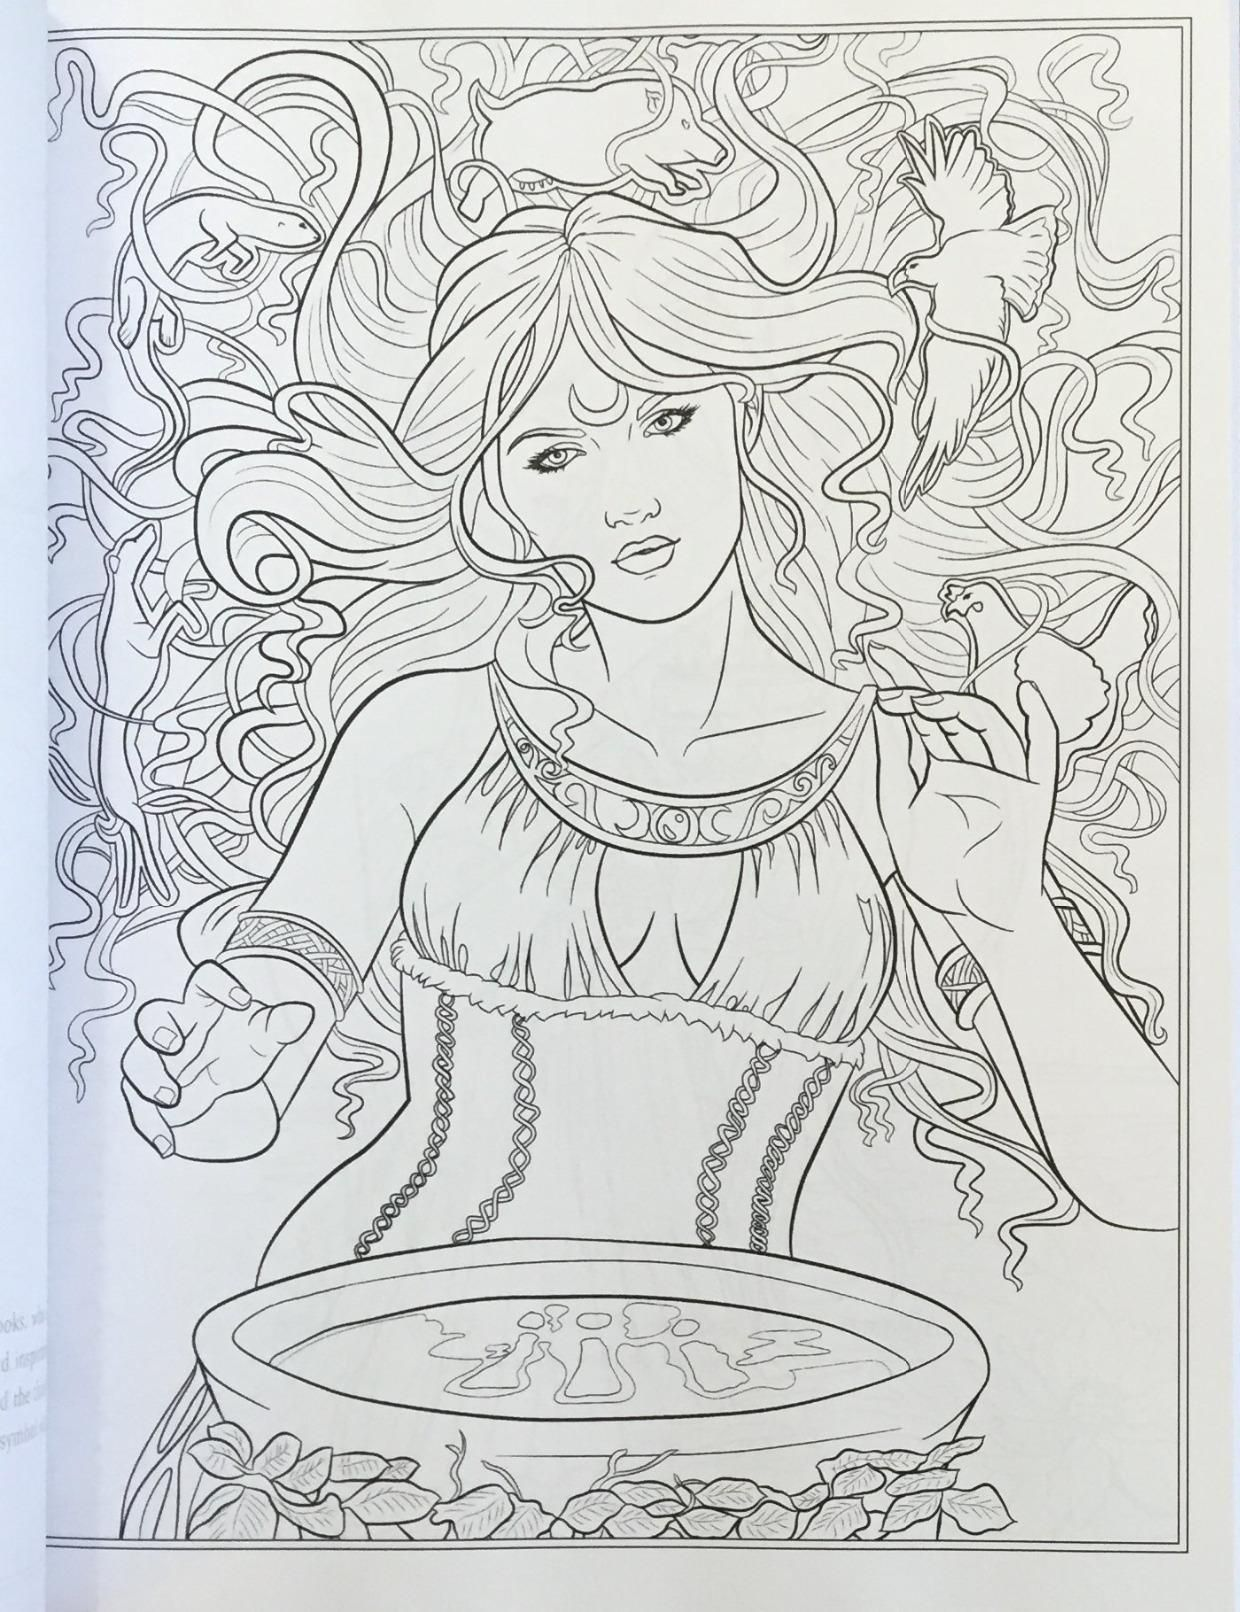 Fairy art coloring book by selina fenech - Amazon Com Goddess And Mythology Coloring Book Fantasy Coloring By Selina